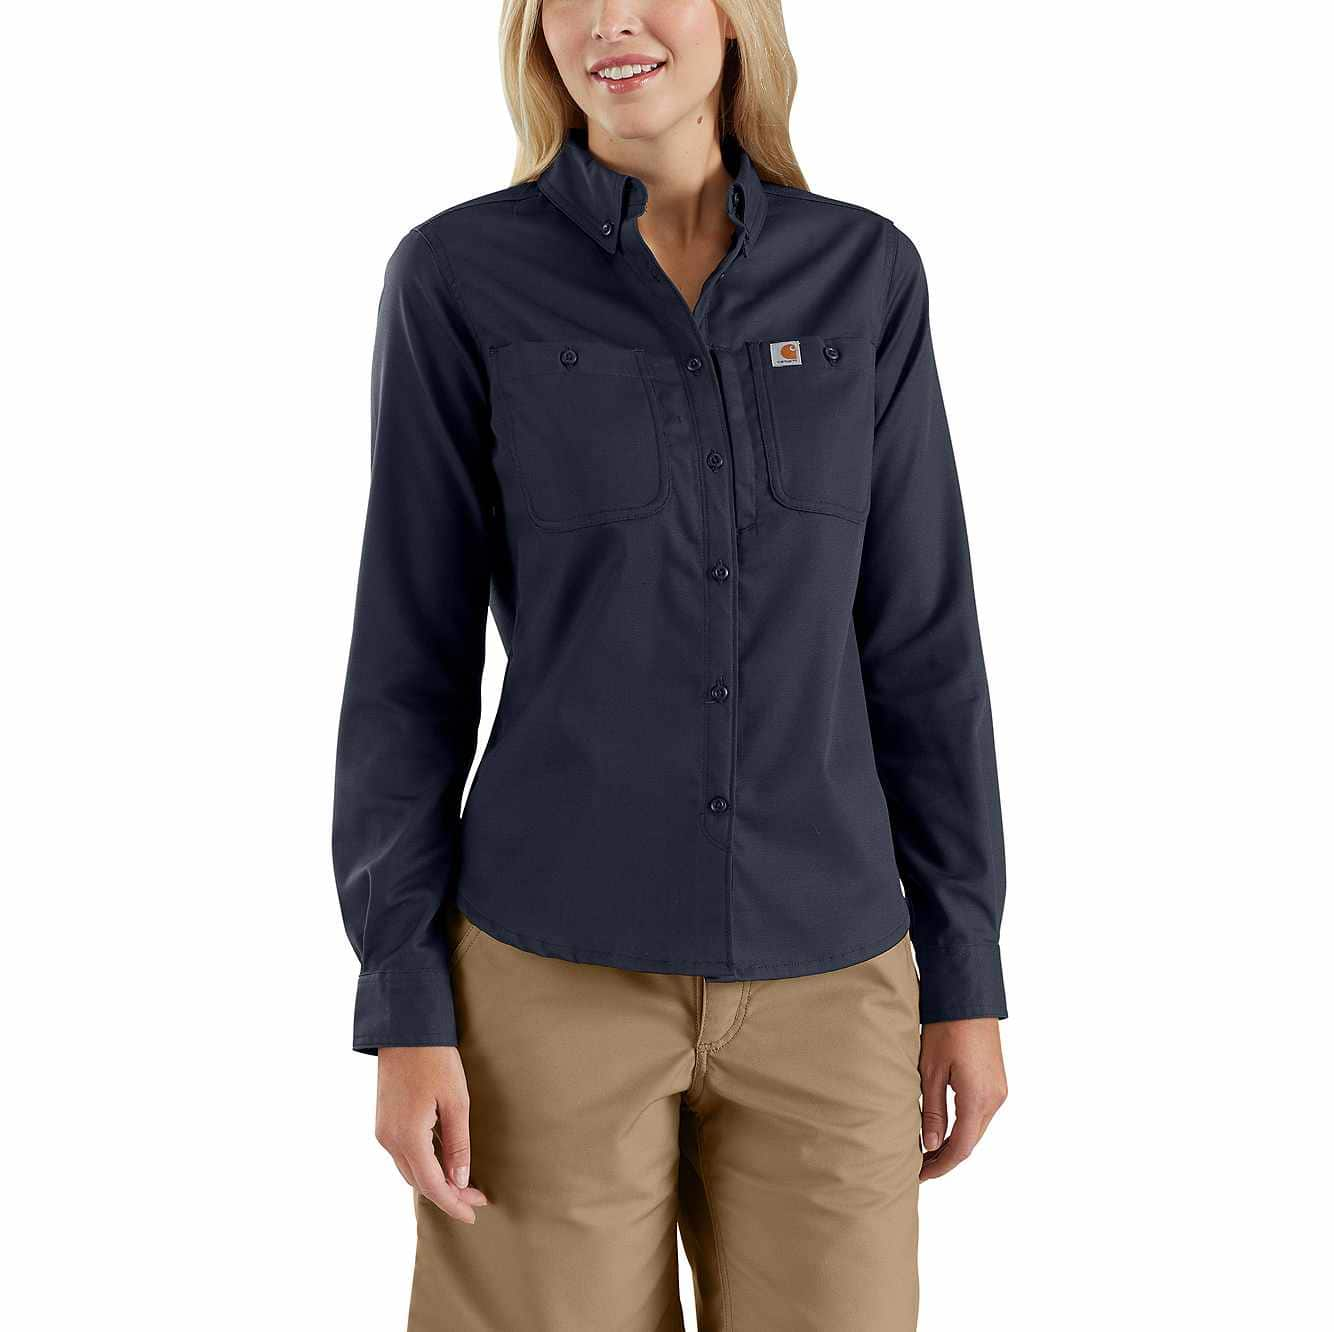 Picture of Rugged Professional™ Series Women's Long-Sleeve Shirt in Navy